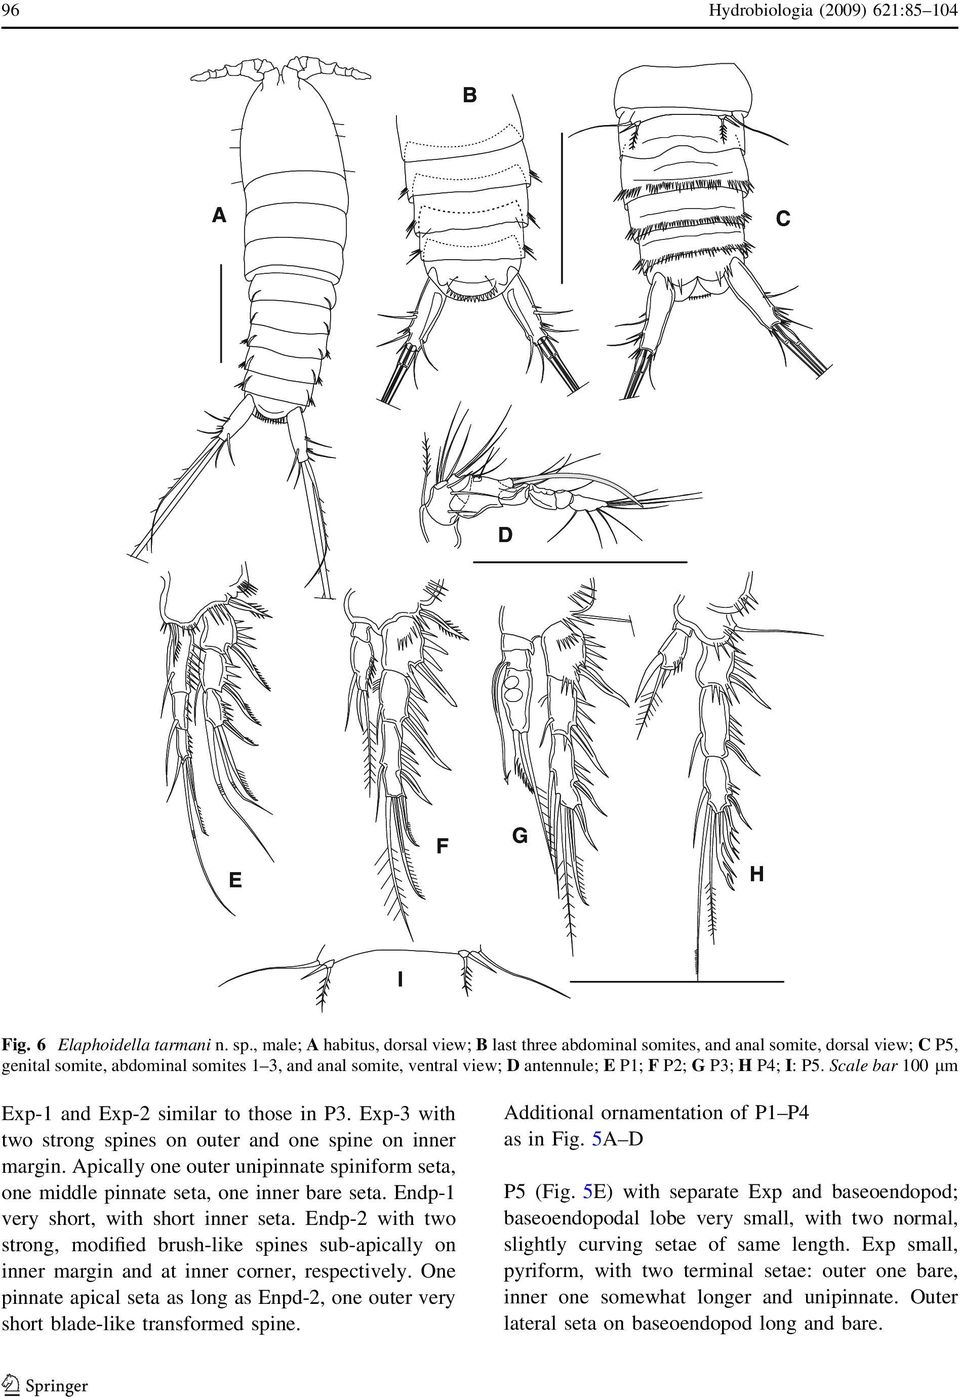 P3; H P4; I: P5. Scale bar 100 lm Exp-1 and Exp-2 similar to those in P3. Exp-3 with two strong spines on outer and one spine on inner margin.